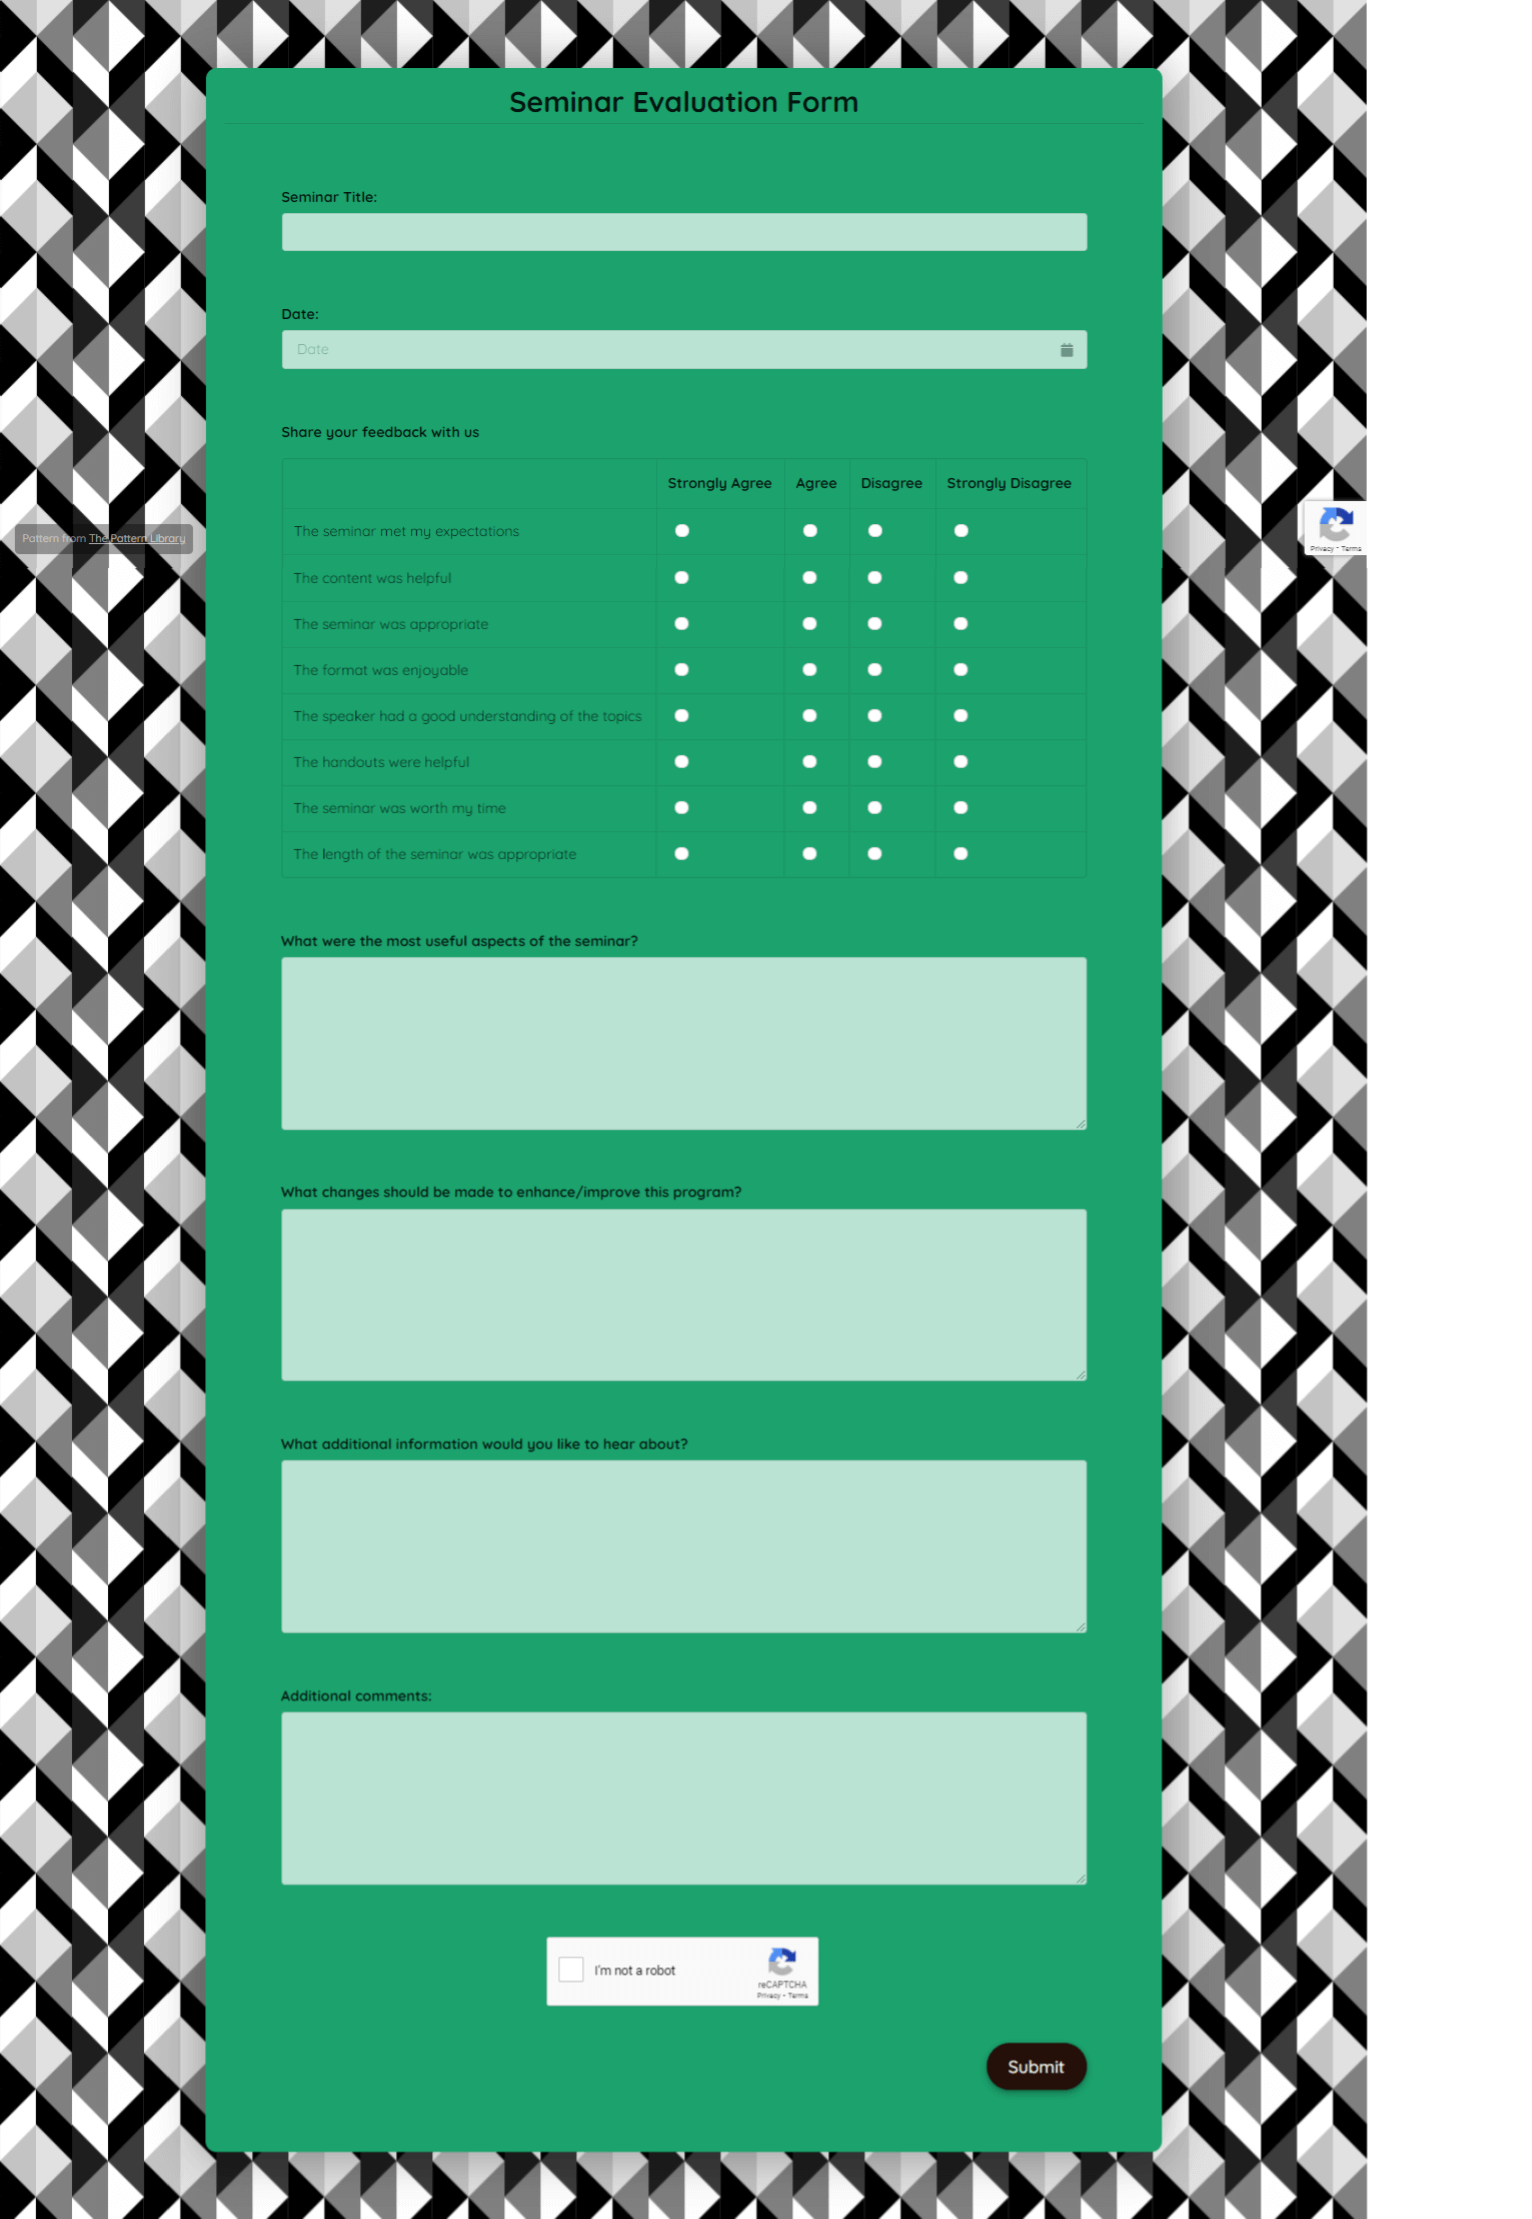 Seminar Evaluation Form Template template